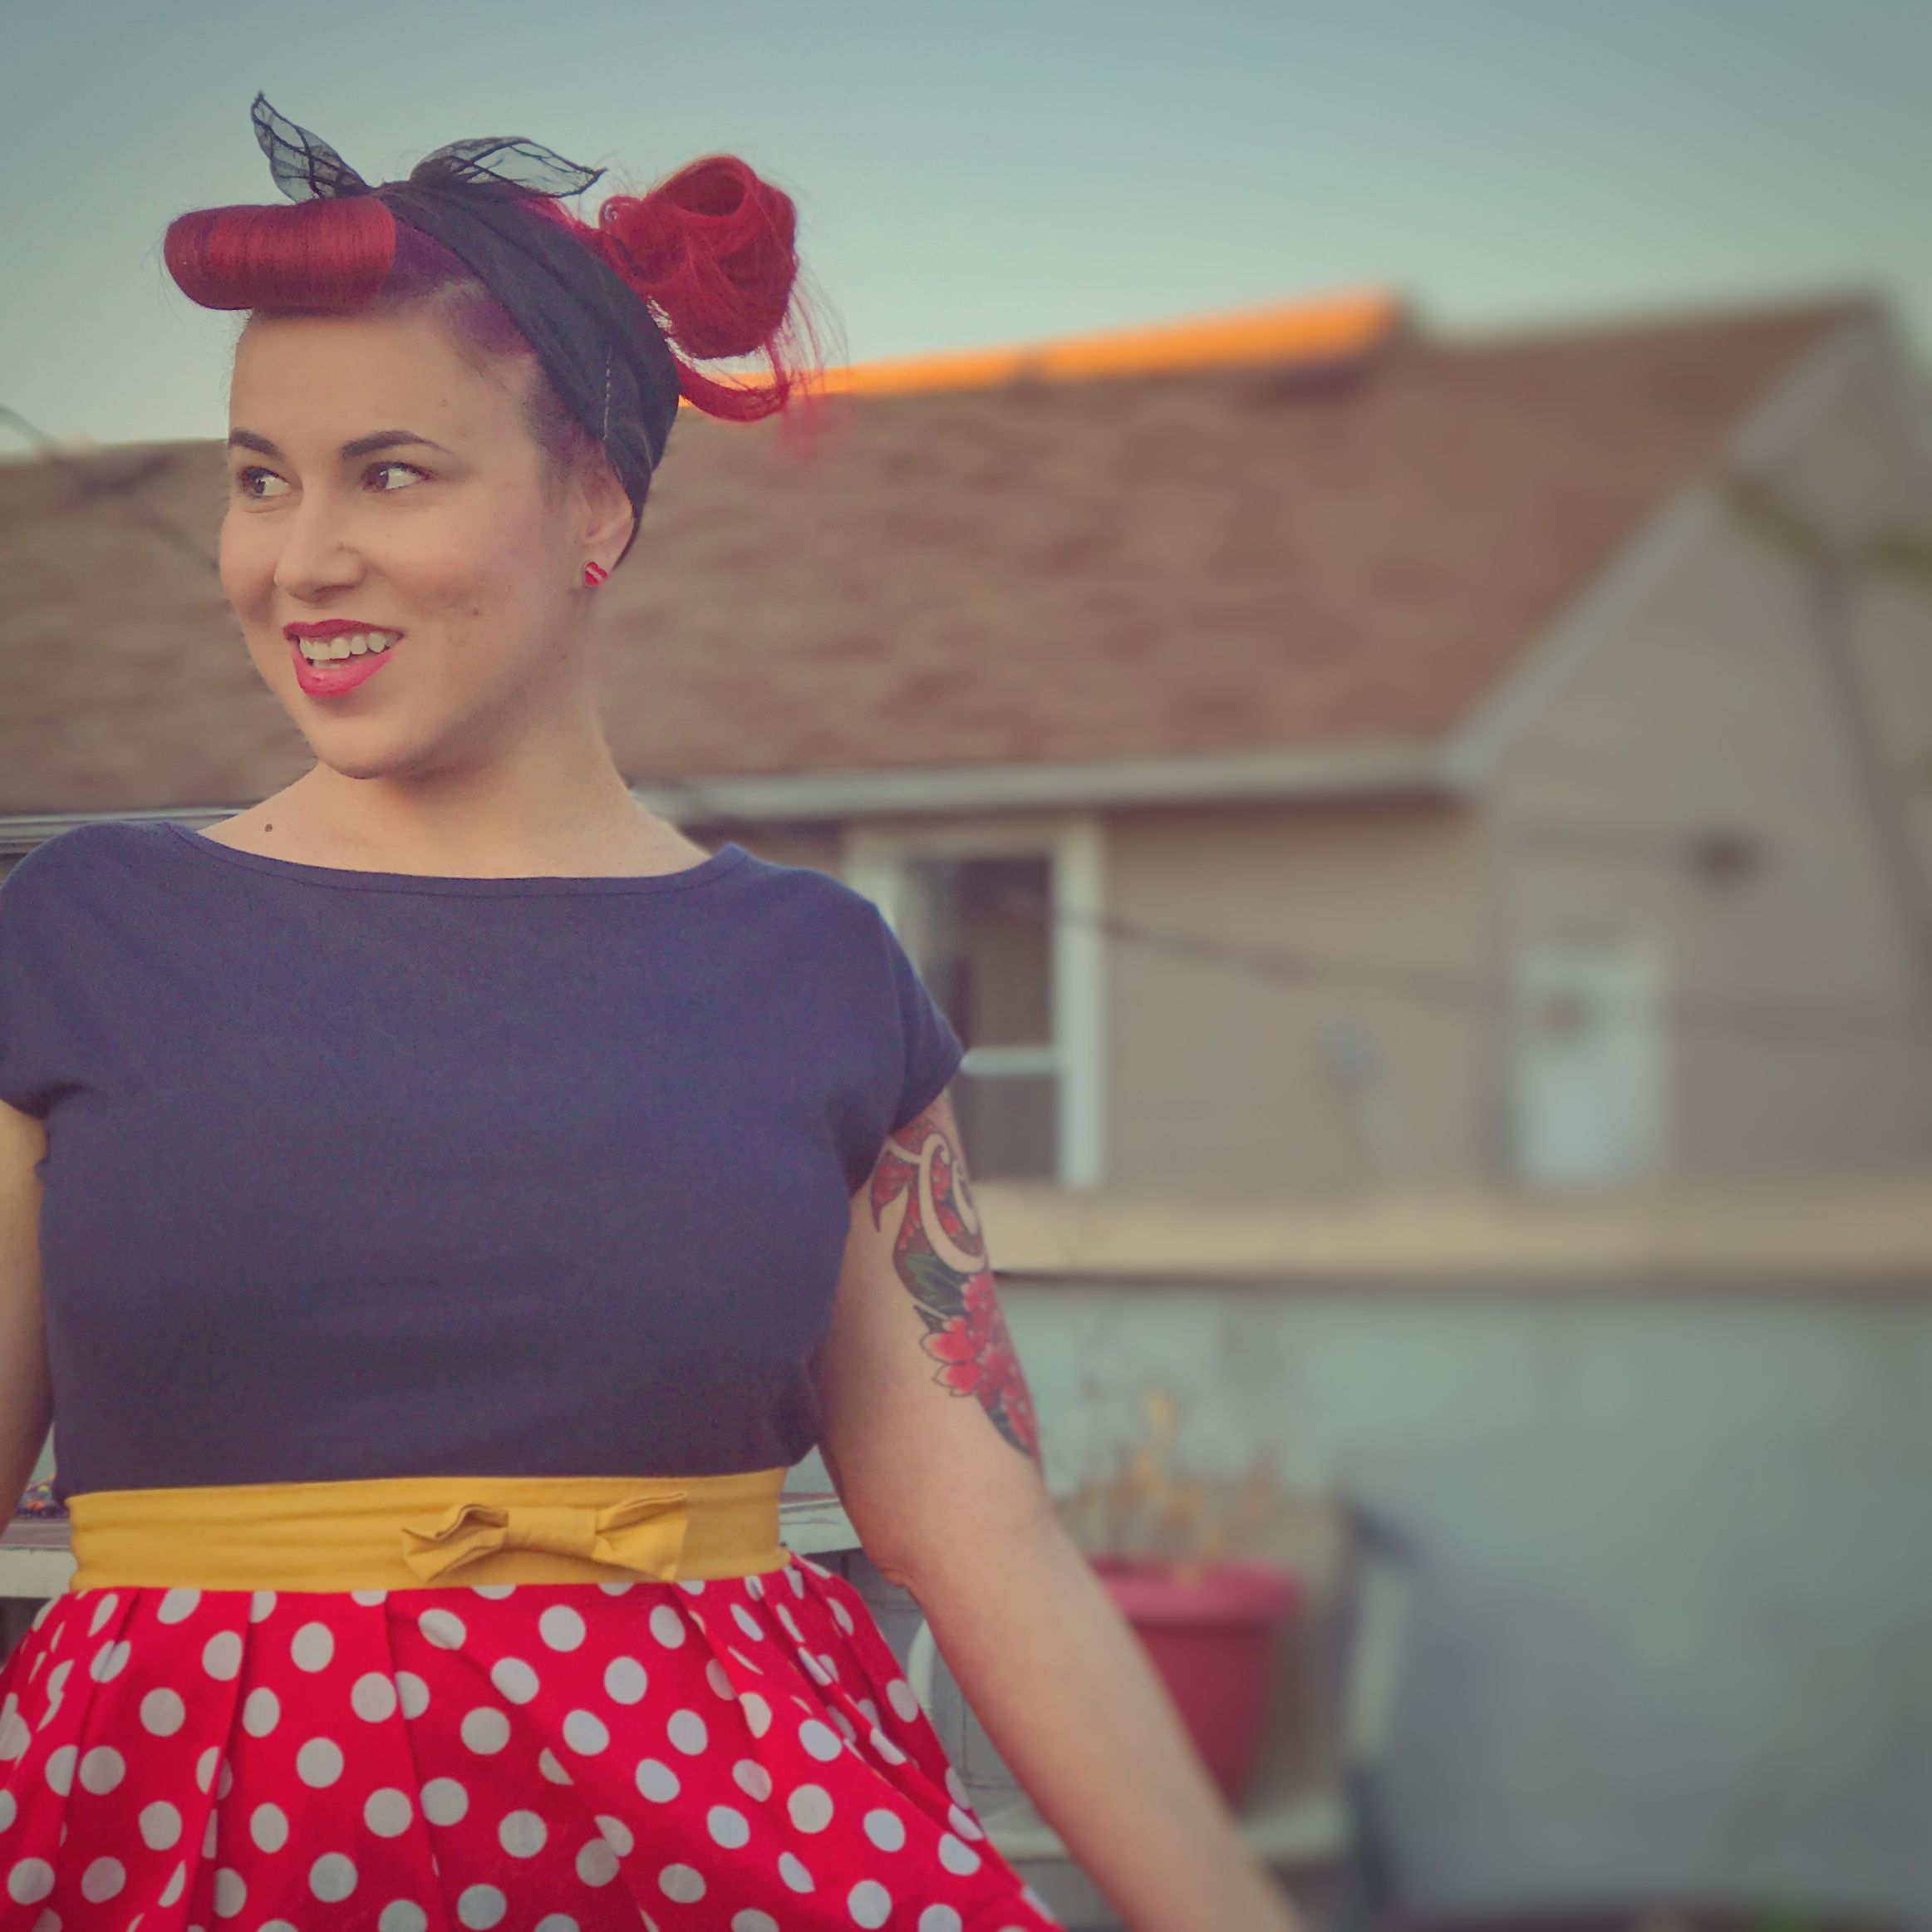 Minnie Mouse Inspired Fashion, Minnie Mouse Style, Minnie Mouse Fashion, Minnie Mouse Clothing, Vintage, Rockabilly Disney